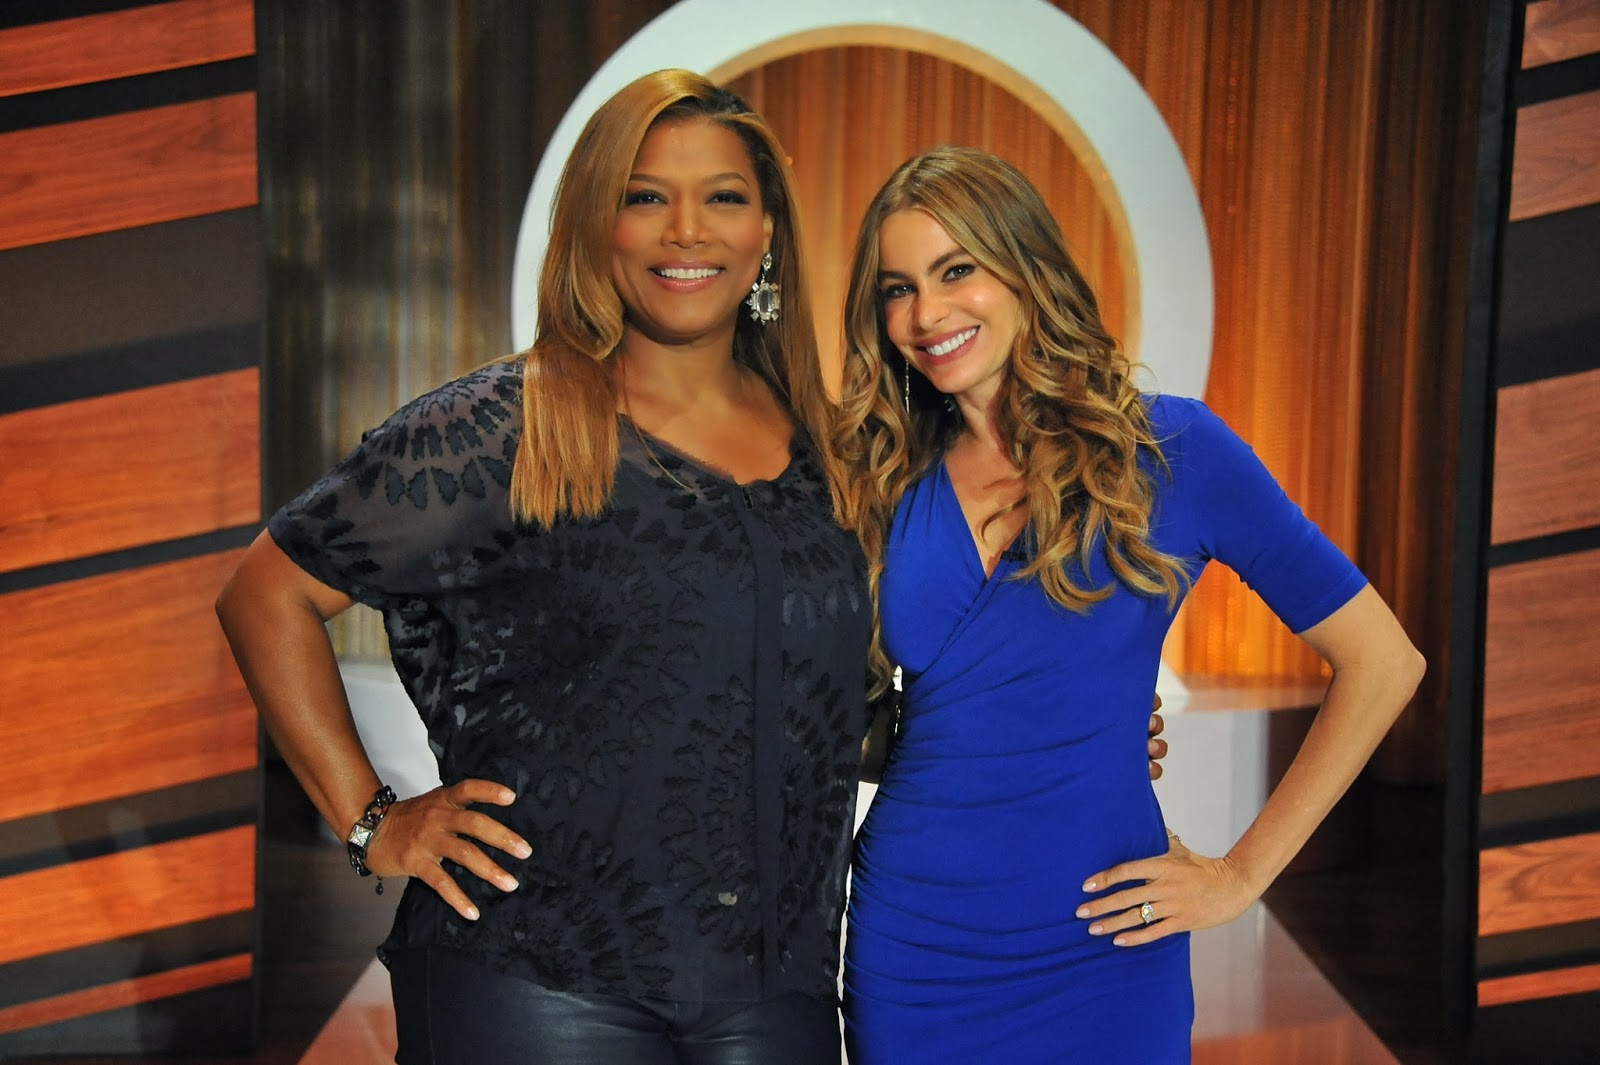 SNEAK PEEK: Queen Latifah Talks Fashion with Sofia Vergara